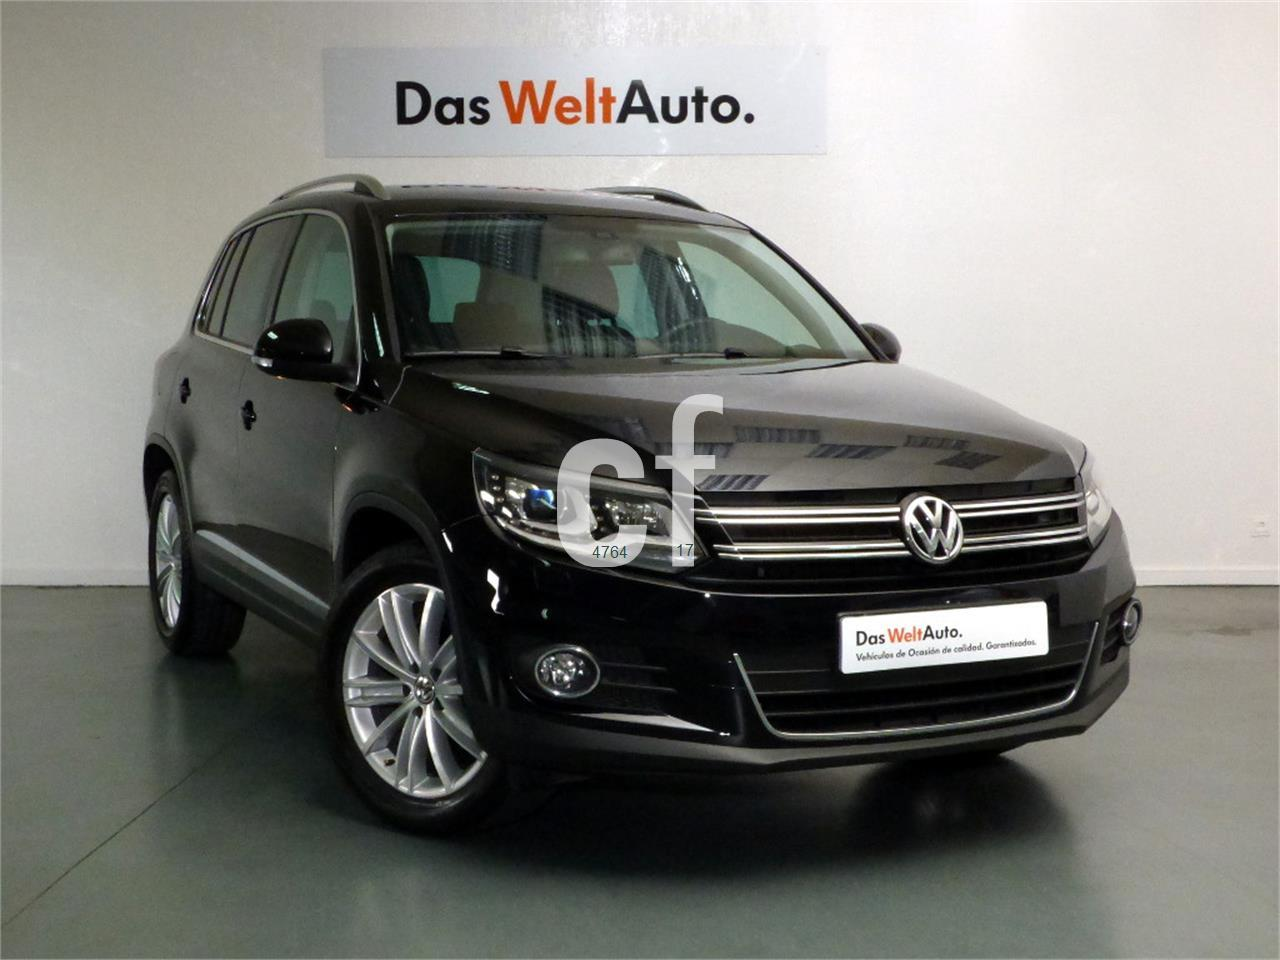 voitures volkswagen tiguan occasion sevilla espagne. Black Bedroom Furniture Sets. Home Design Ideas